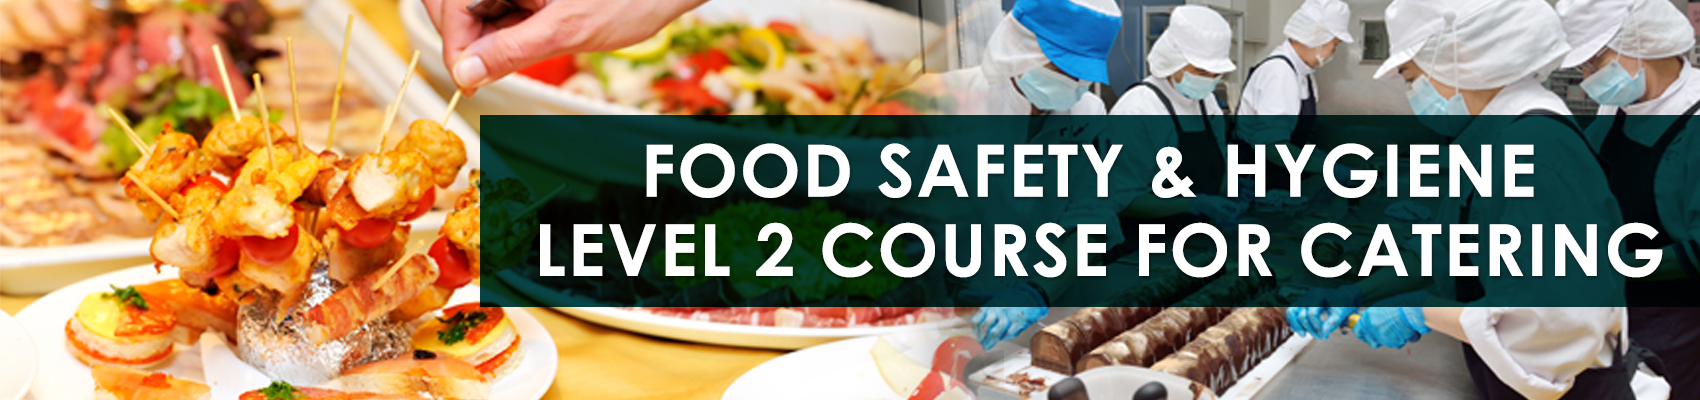 Food Safety & Hygiene Level 2 Course For Catering - GREEN